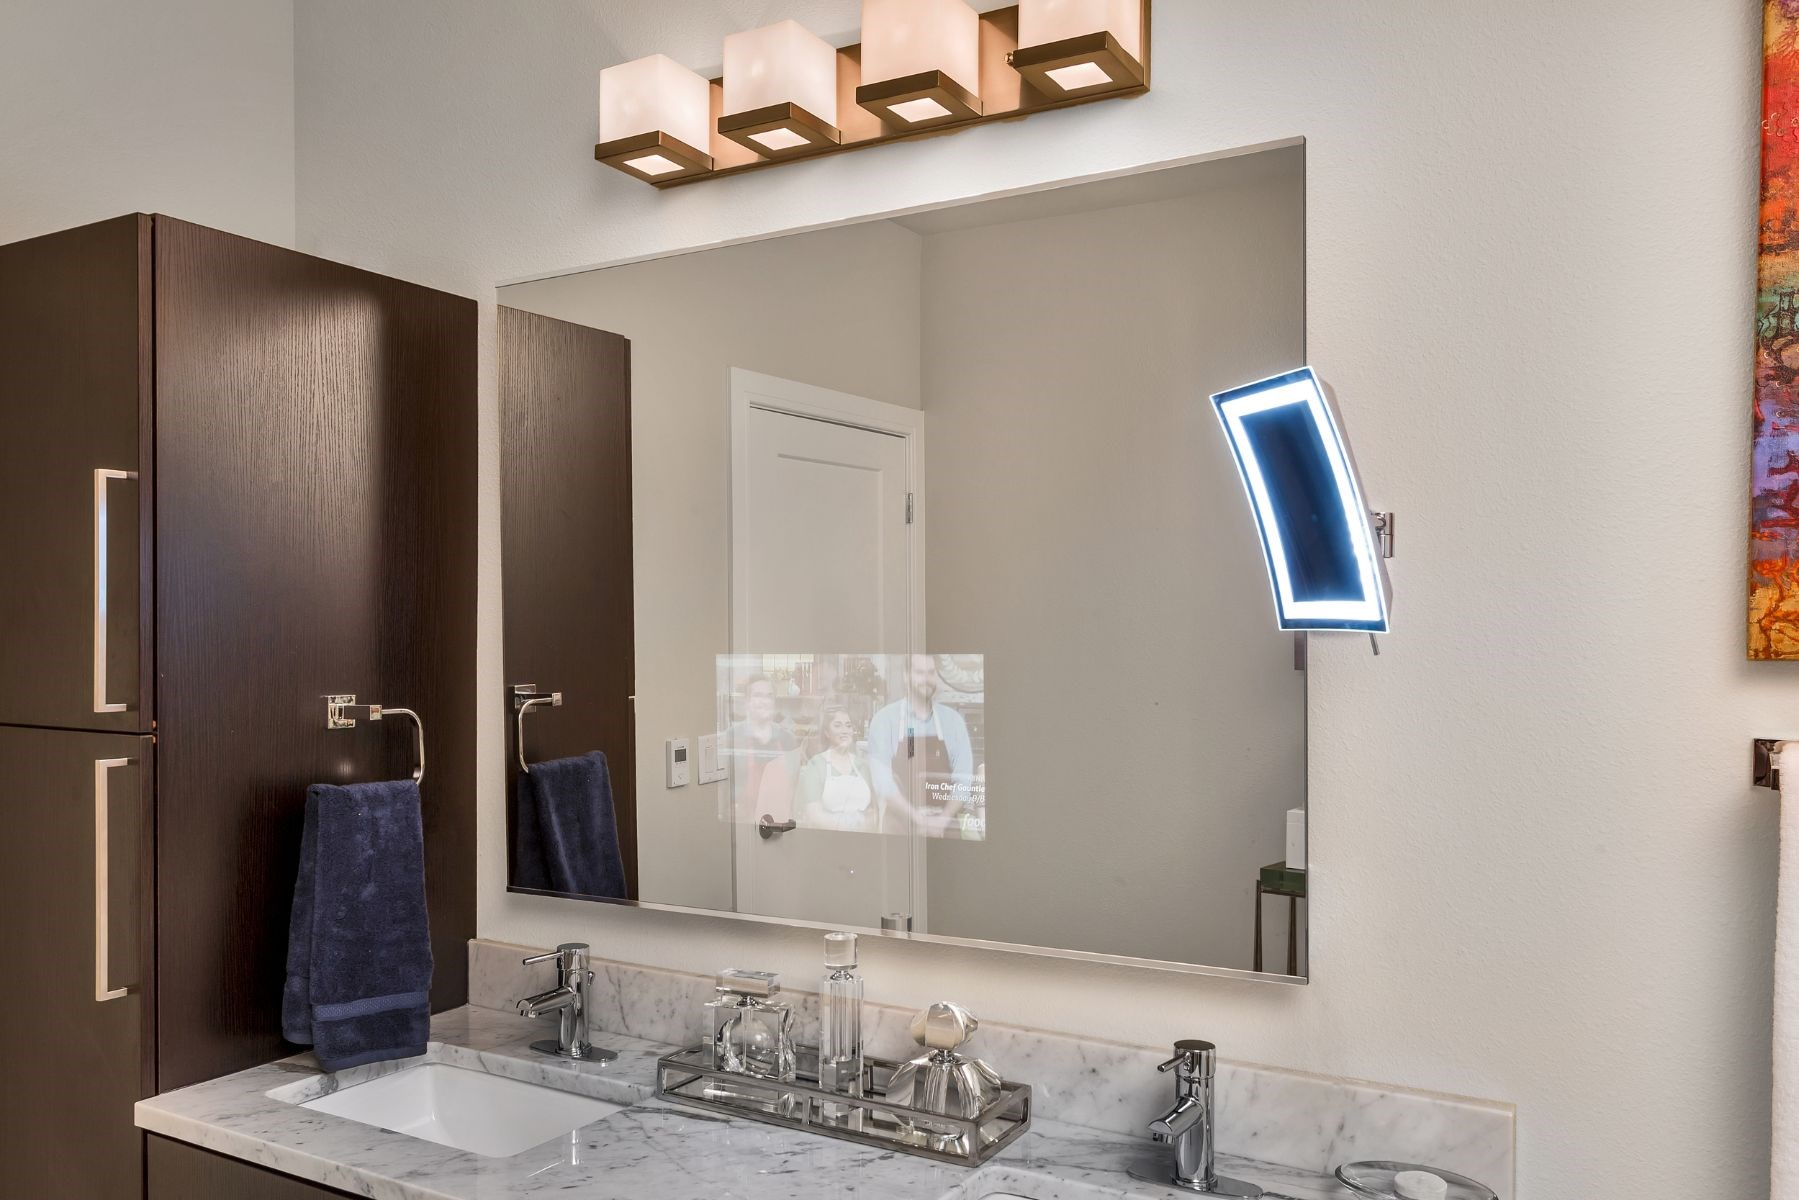 Westwood Green Apartments Bathroom Vanity with tv built into mirror